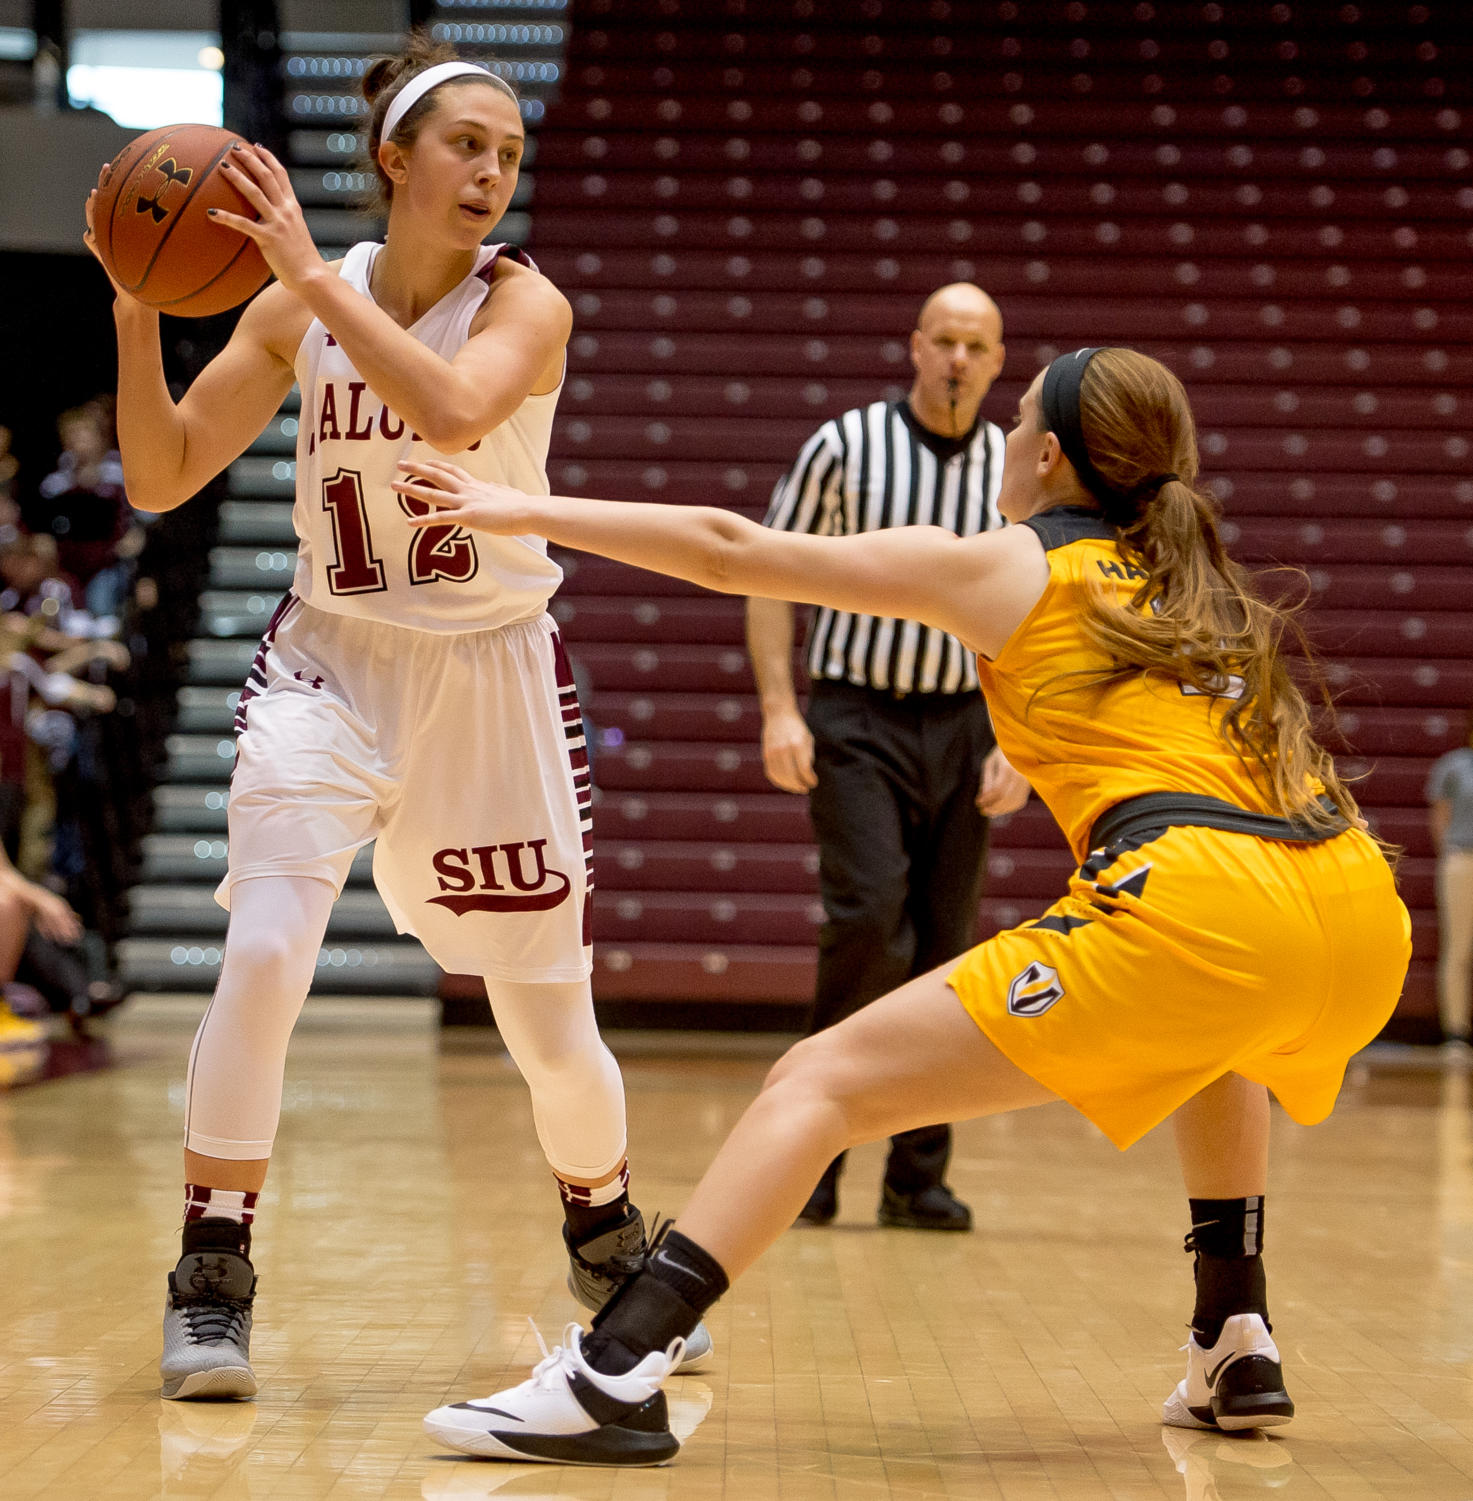 Freshman guard Makenzie Silvey looks to pass the ball Sunday, Jan. 21, 2018, during the Salukis' 74-63 victory over the Valparaiso University Crusaders at SIU Arena. (Brian Mu–oz | @BrianMMunoz)